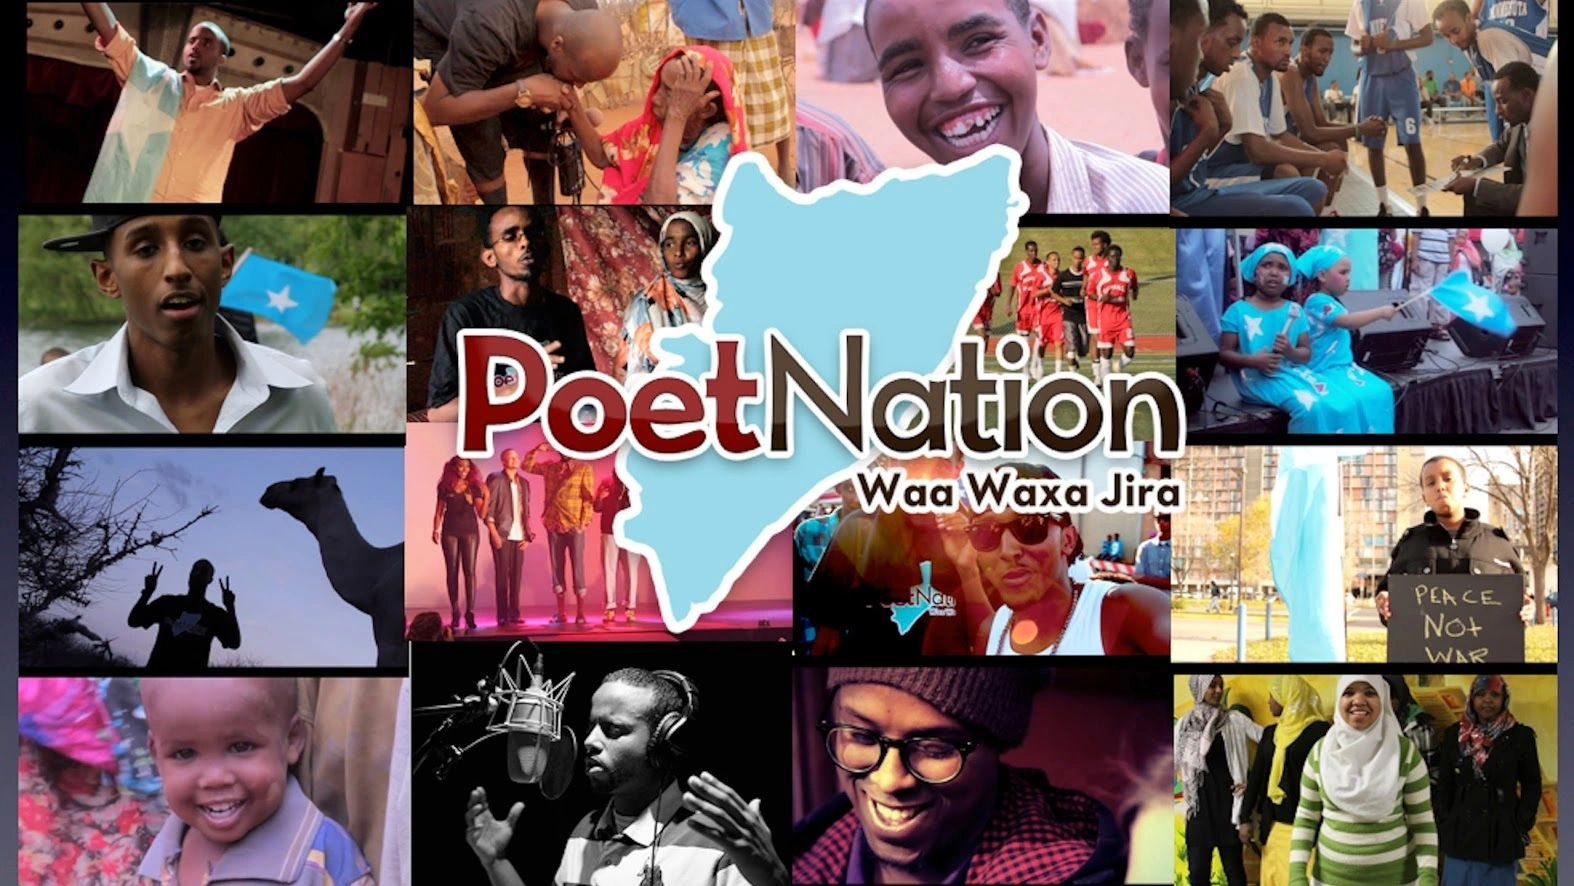 Poet Nation is a Somali art and culture hub that engages youth through poetry, music and stories.